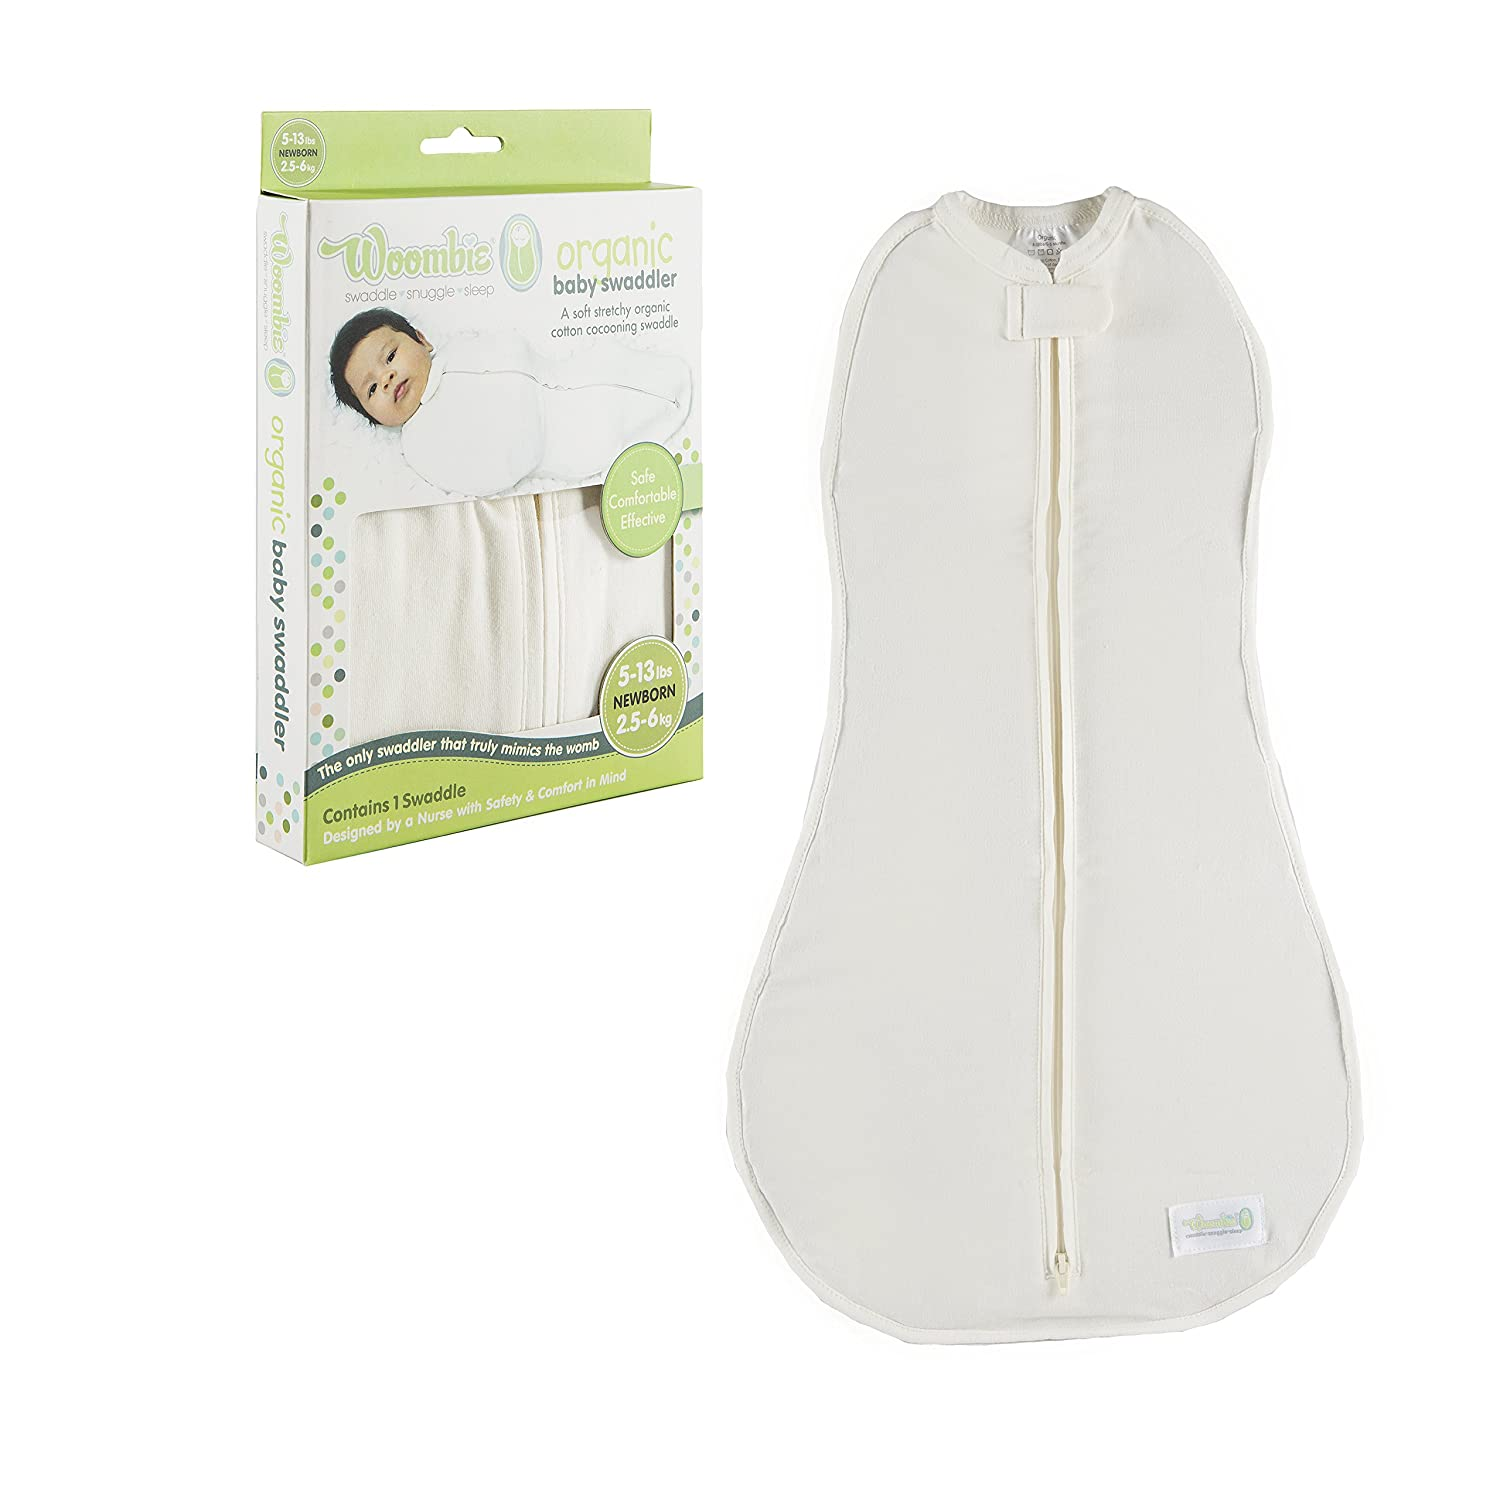 The Woombie Organic Swaddle Blanket